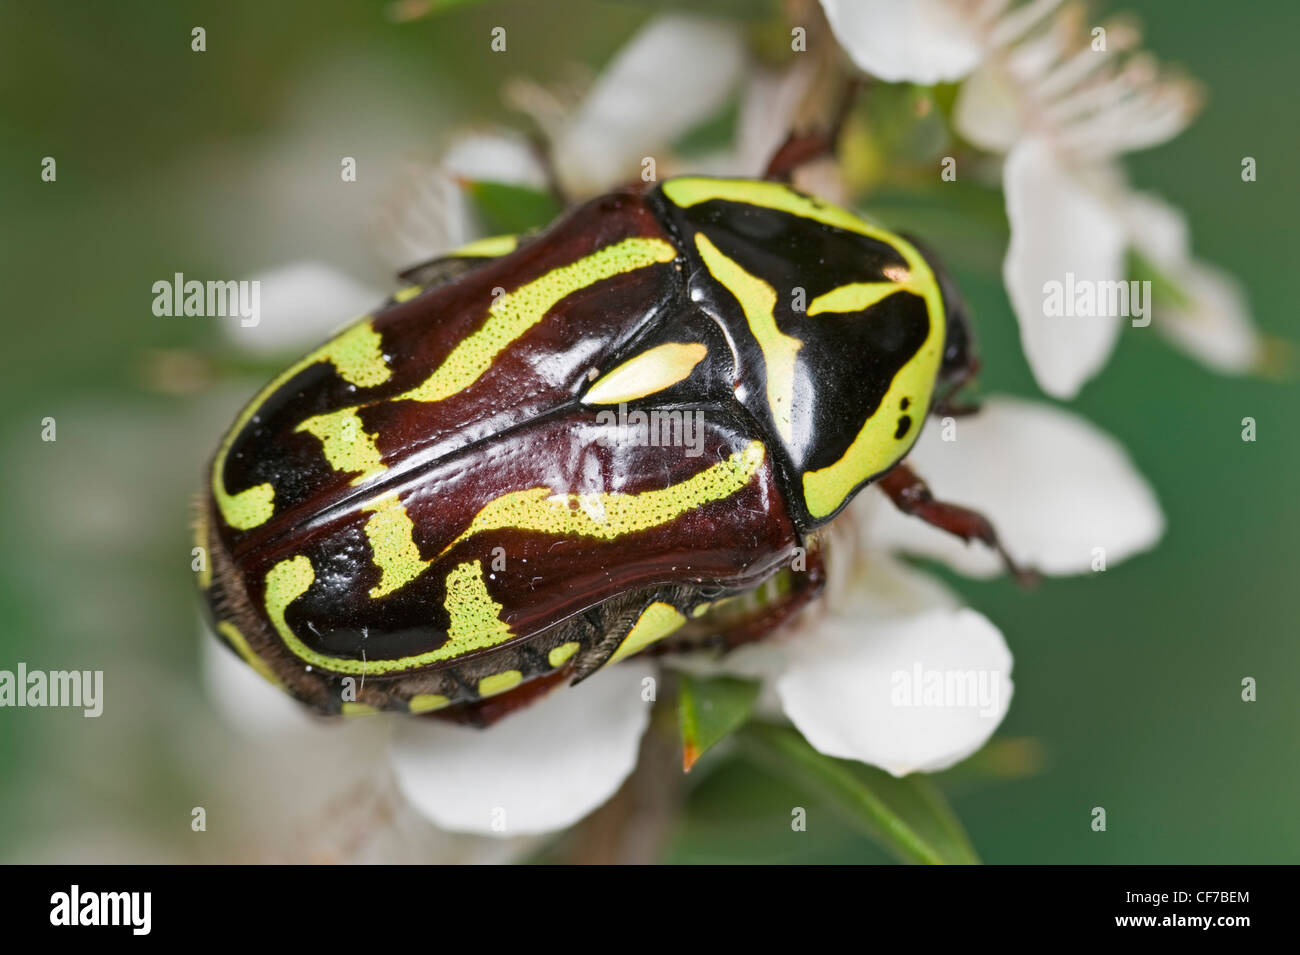 Australian Fiddler beetle showing the striking markings which give it its name - Stock Image